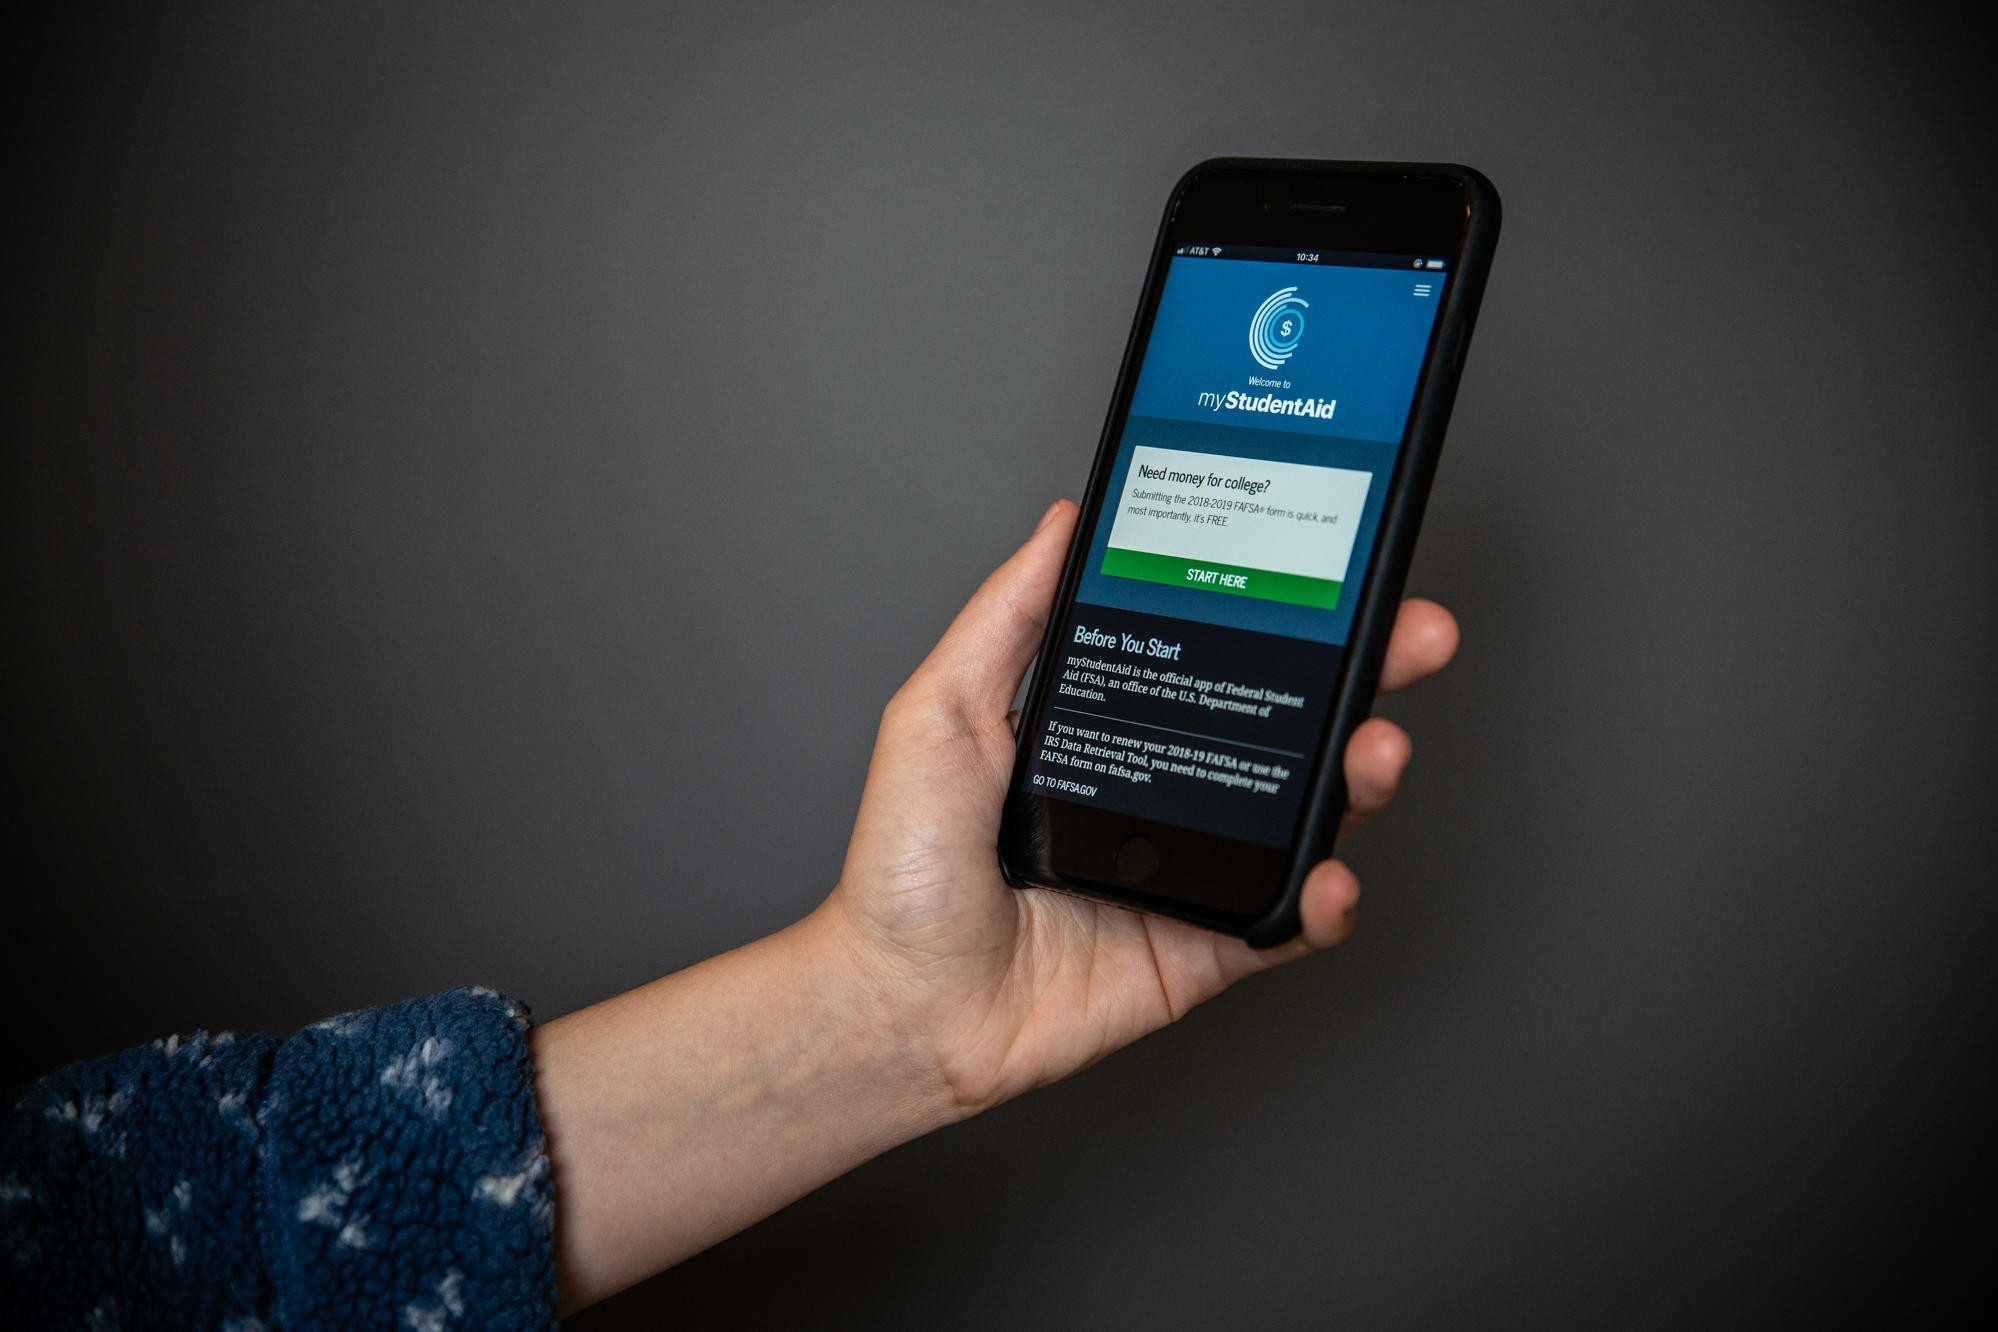 Need Help Paying For College? There's An App For That   Wlrn within Help Paying For College 46272